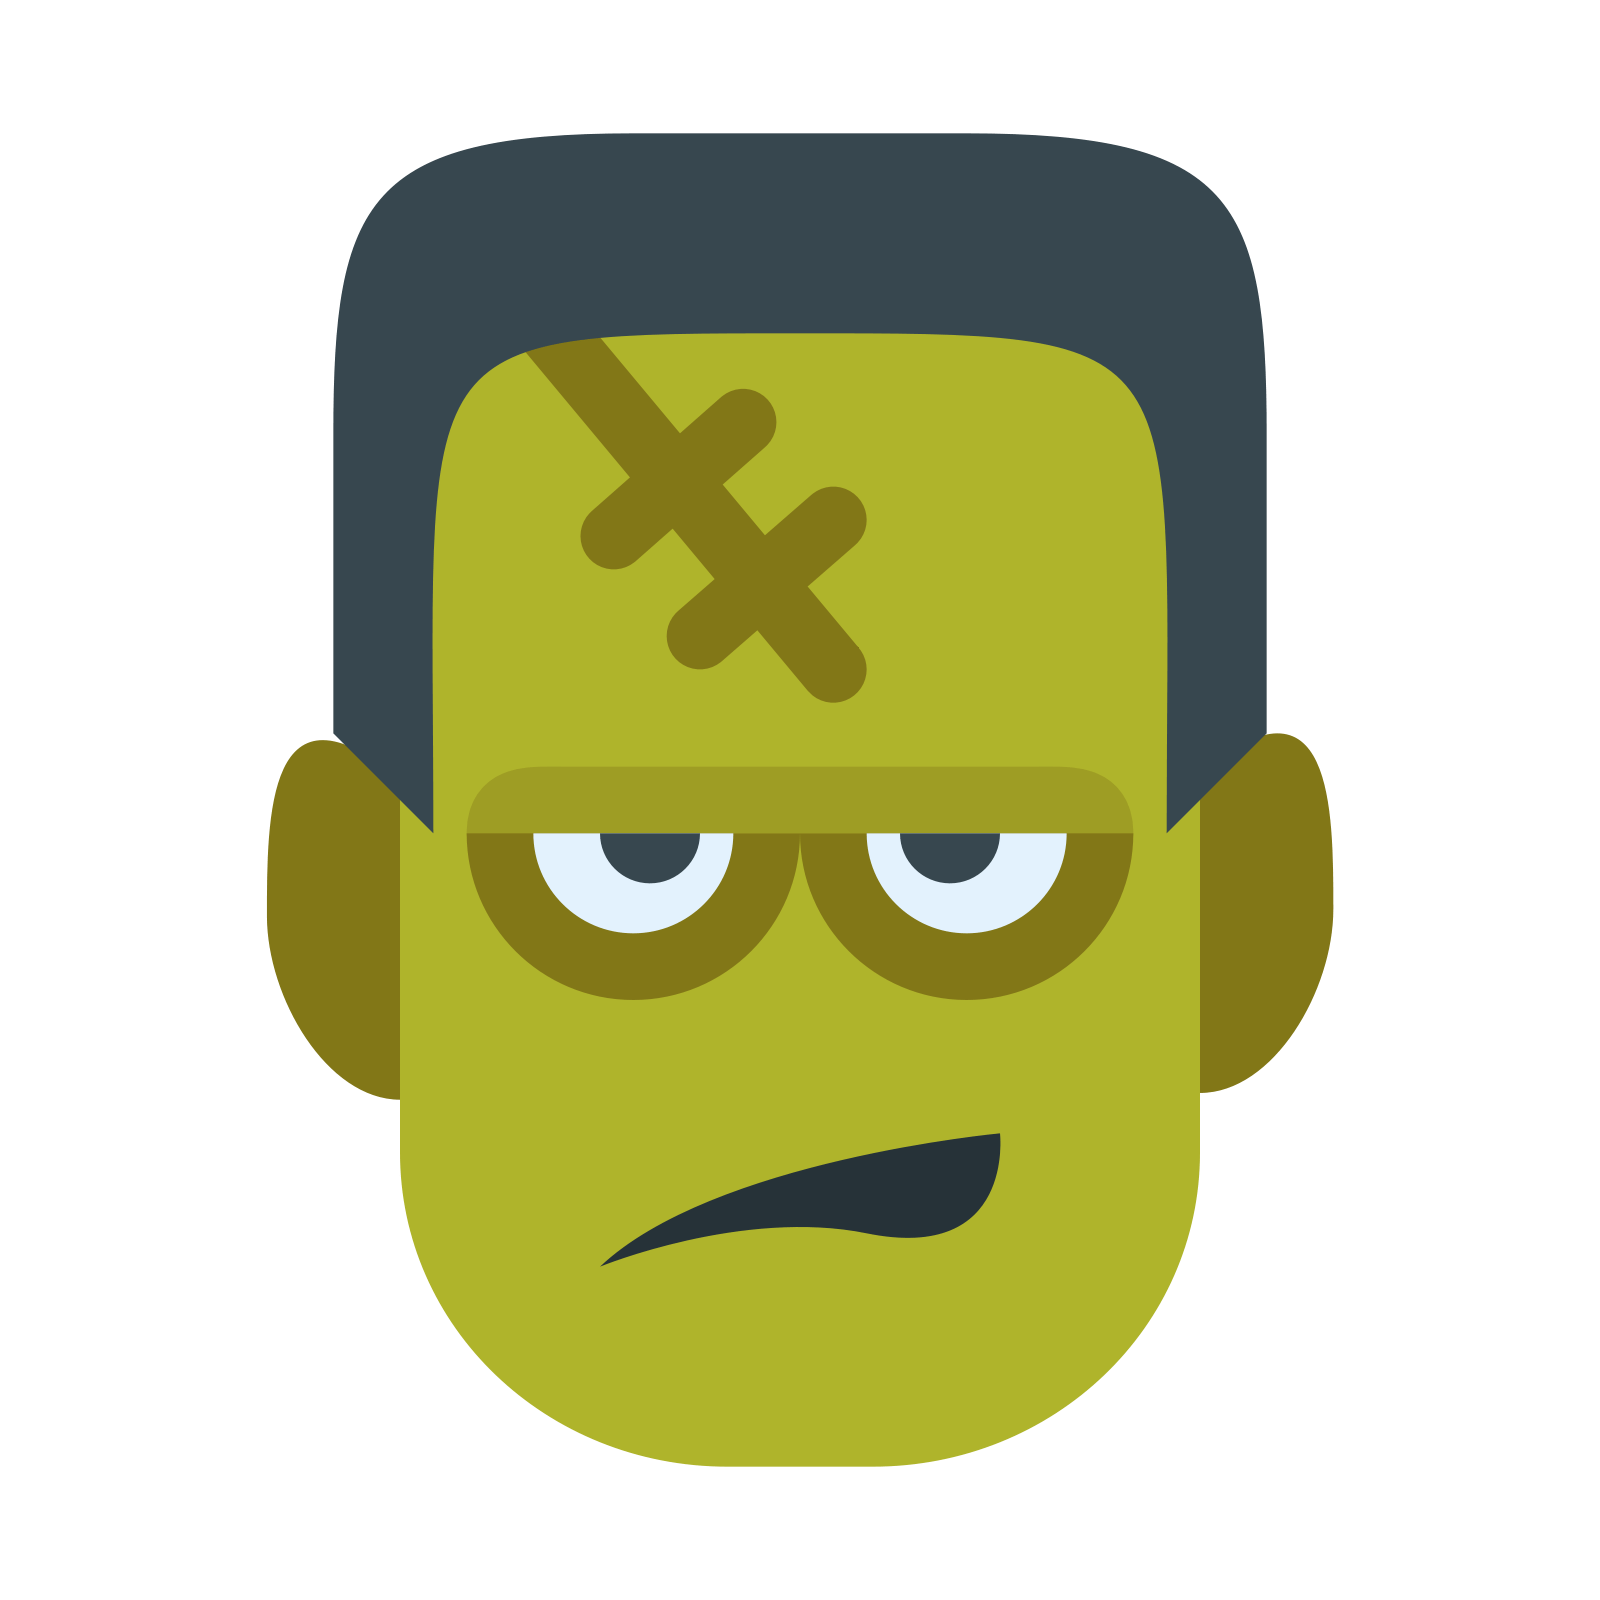 Frankenstein clipart with transparent background graphic transparent stock Frankenstein Colour Icon transparent PNG - StickPNG graphic transparent stock